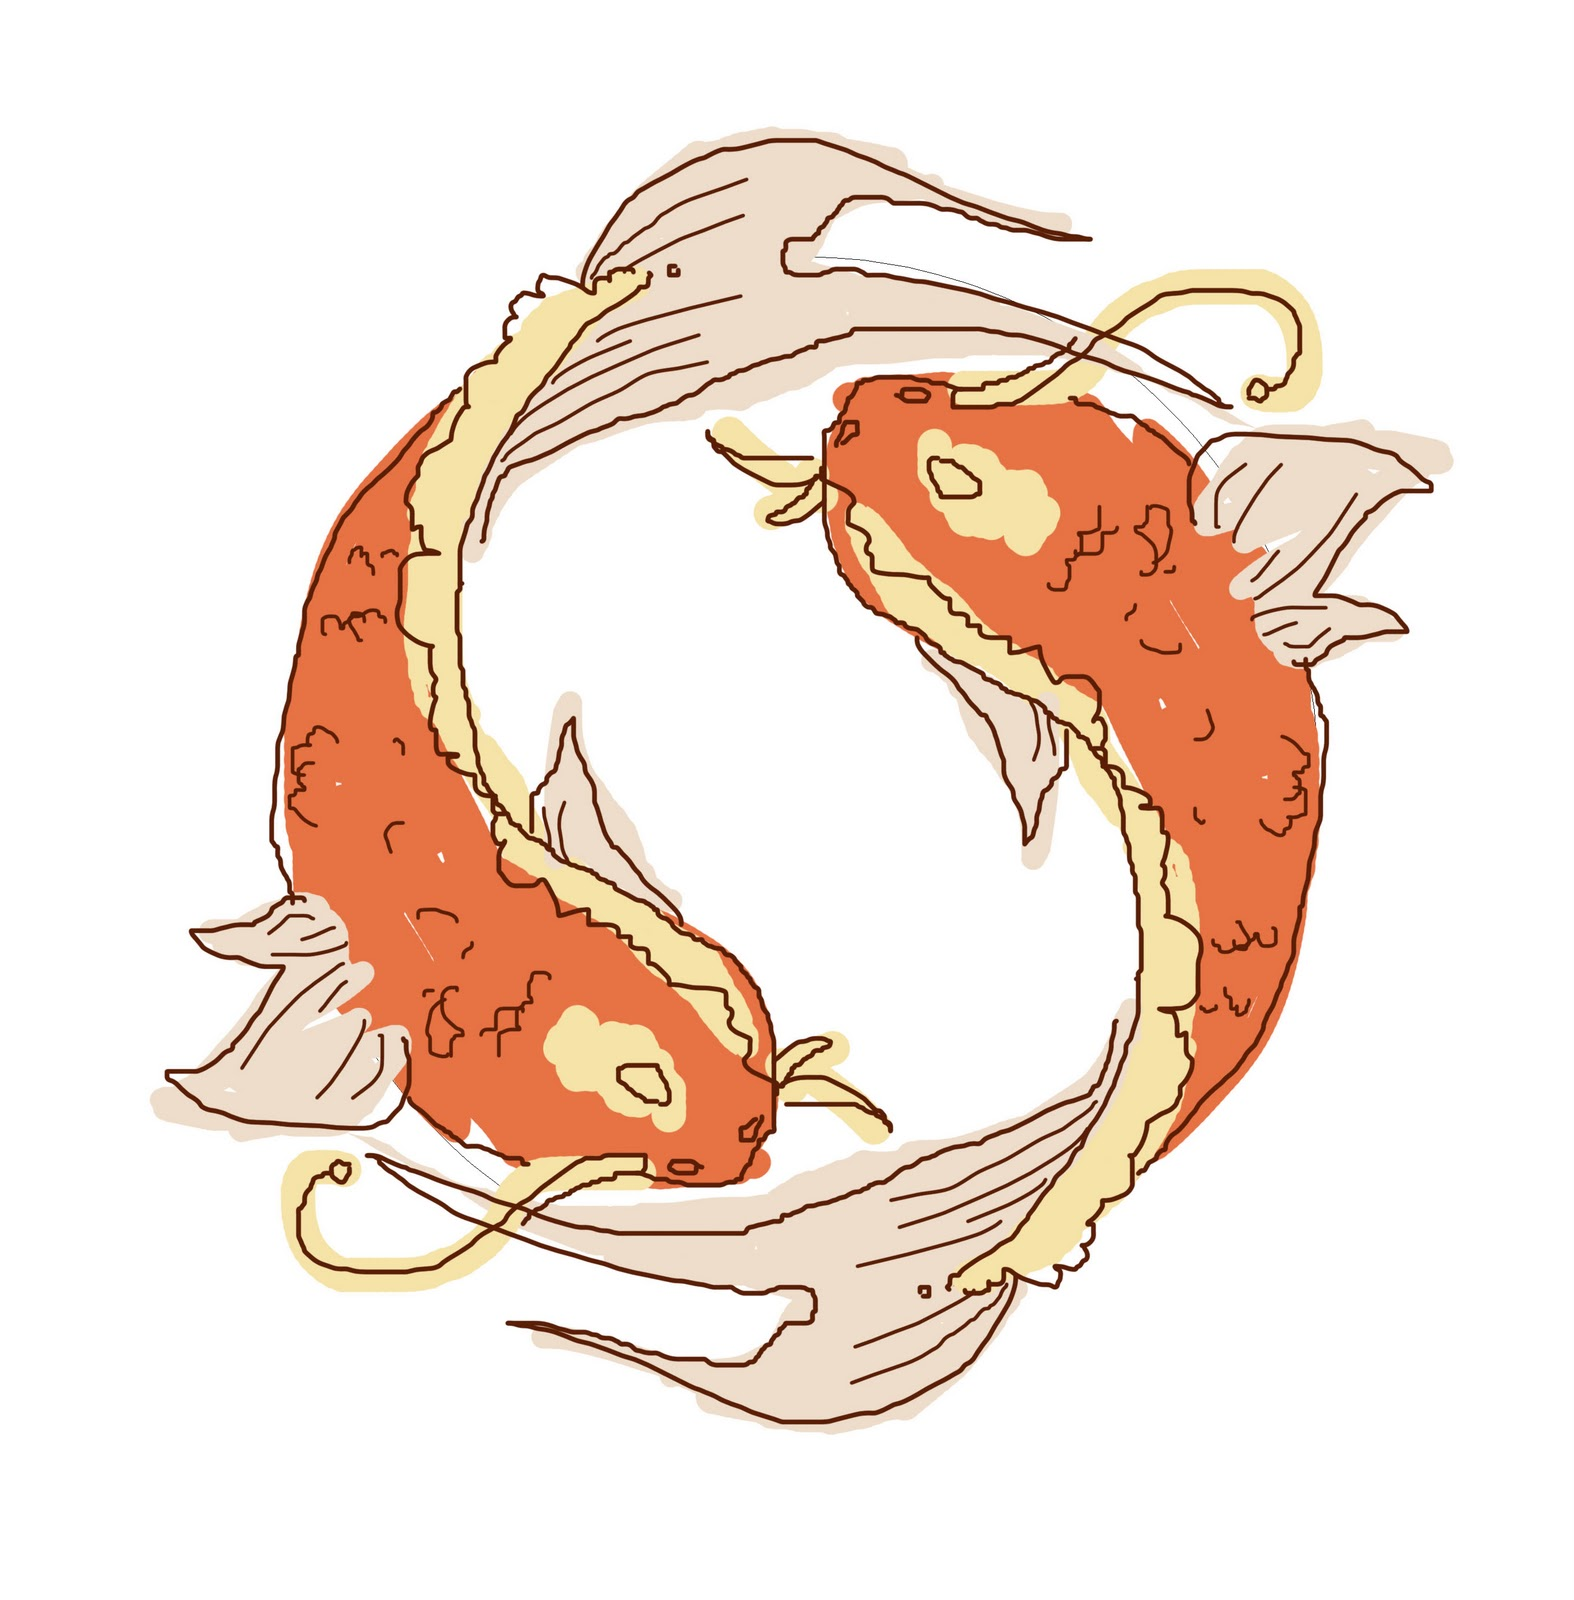 Im working on koi